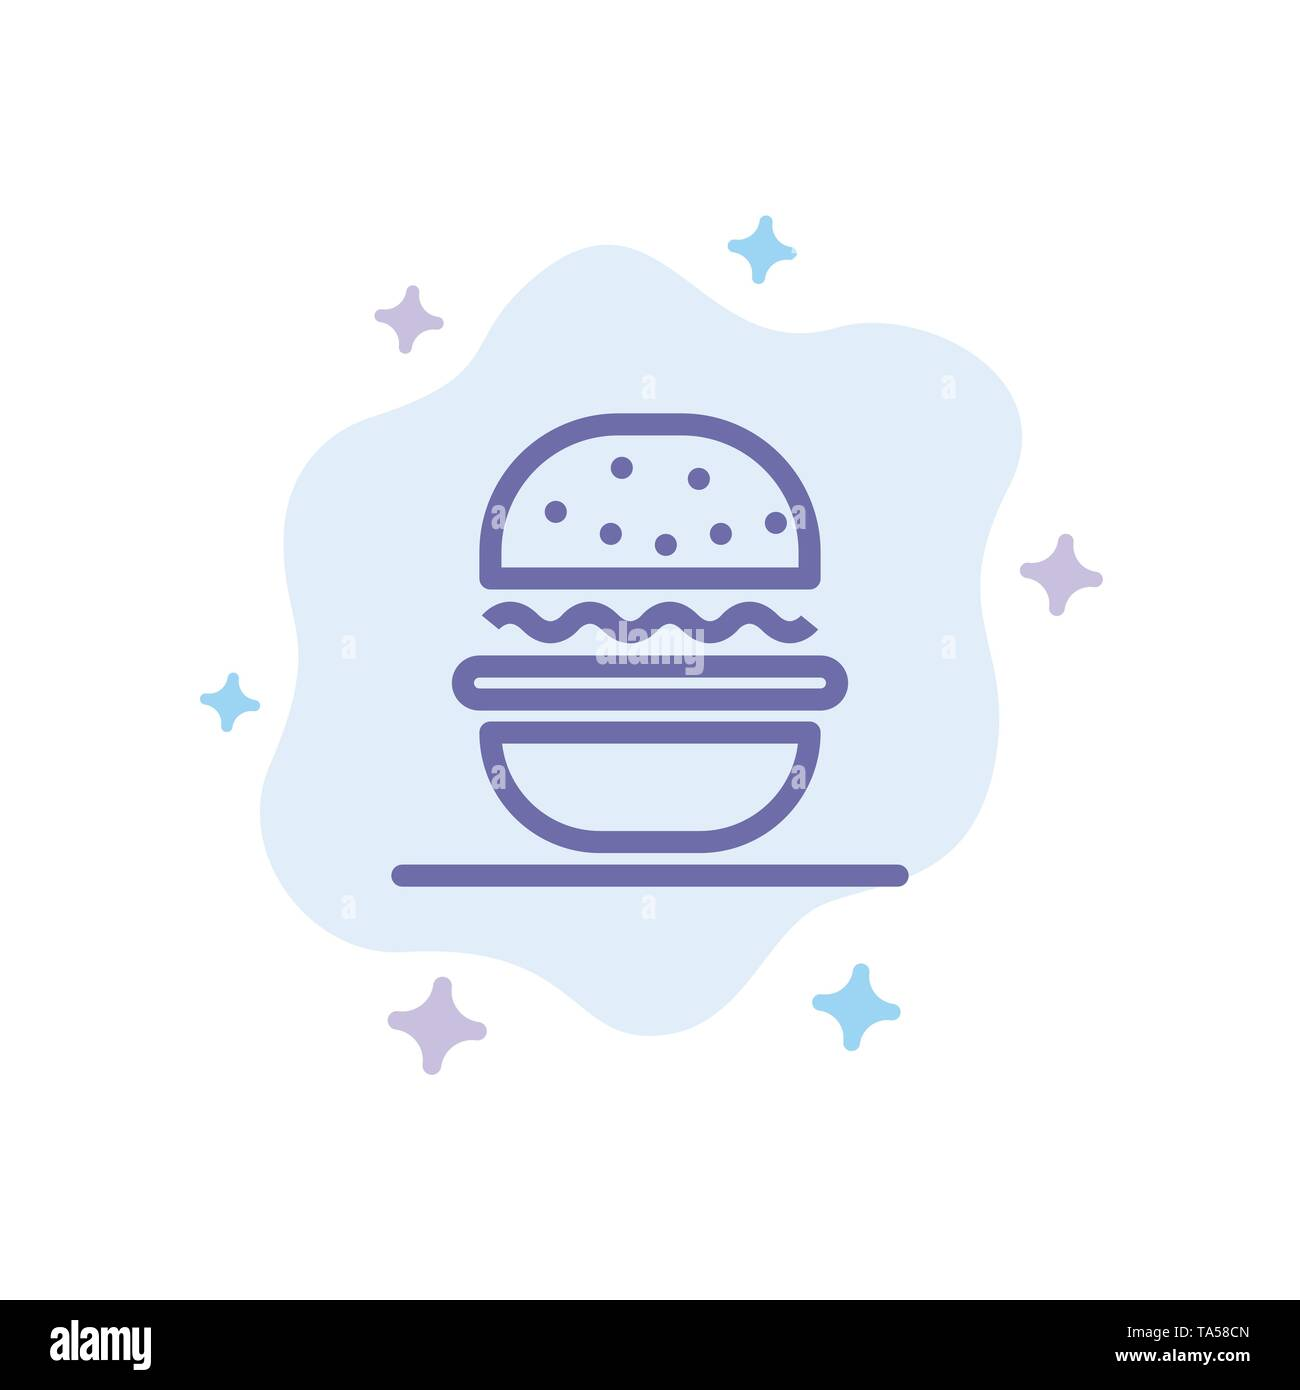 Burger, Eat, American, Usa Blue Icon on Abstract Cloud Background - Stock Image